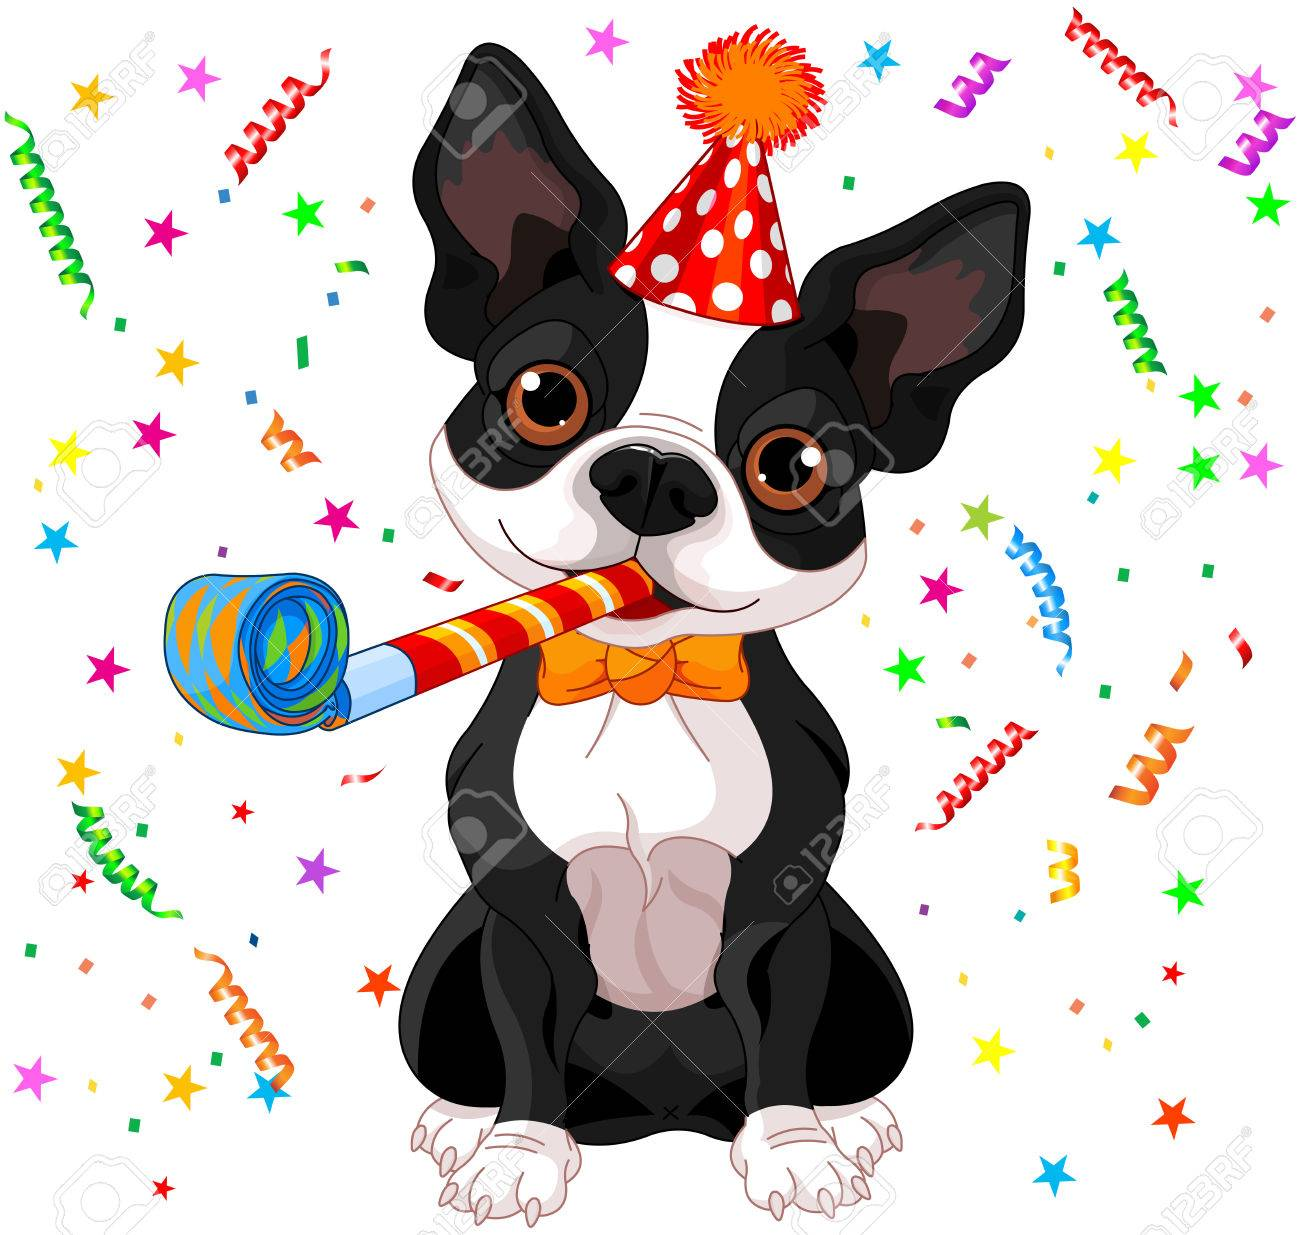 Aboiements/hurlement: absences, solitude/séparation - Page 23 35588778-illustration-of-cute-boston-terrier-celebrating